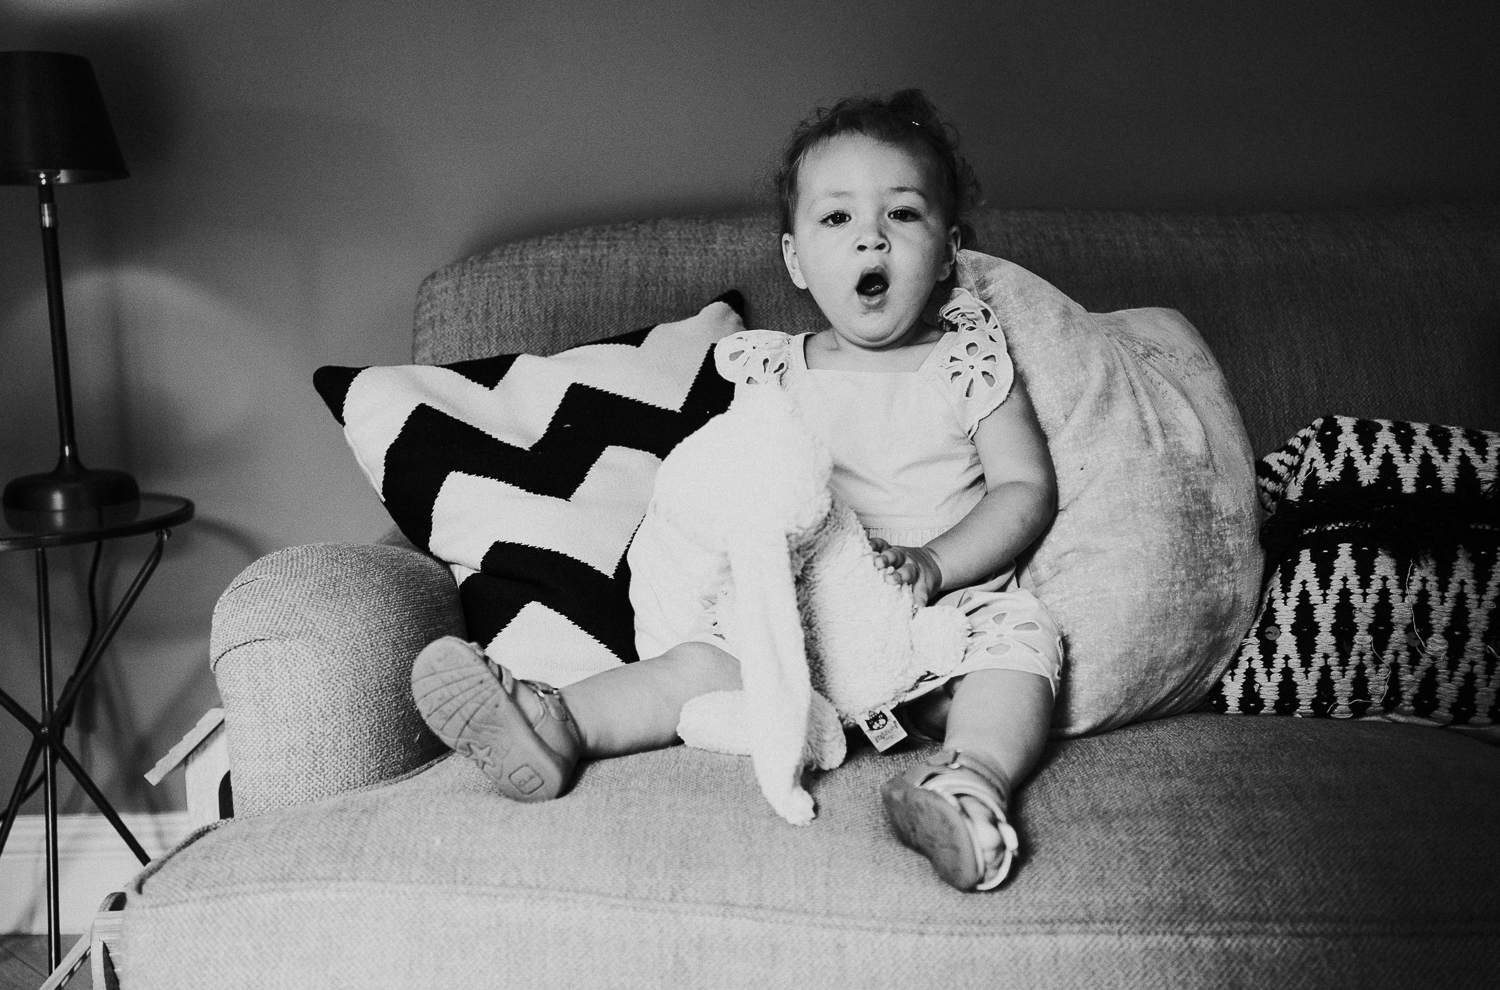 sibling family photography 2020 black and white portrait young girl on sofa yawning